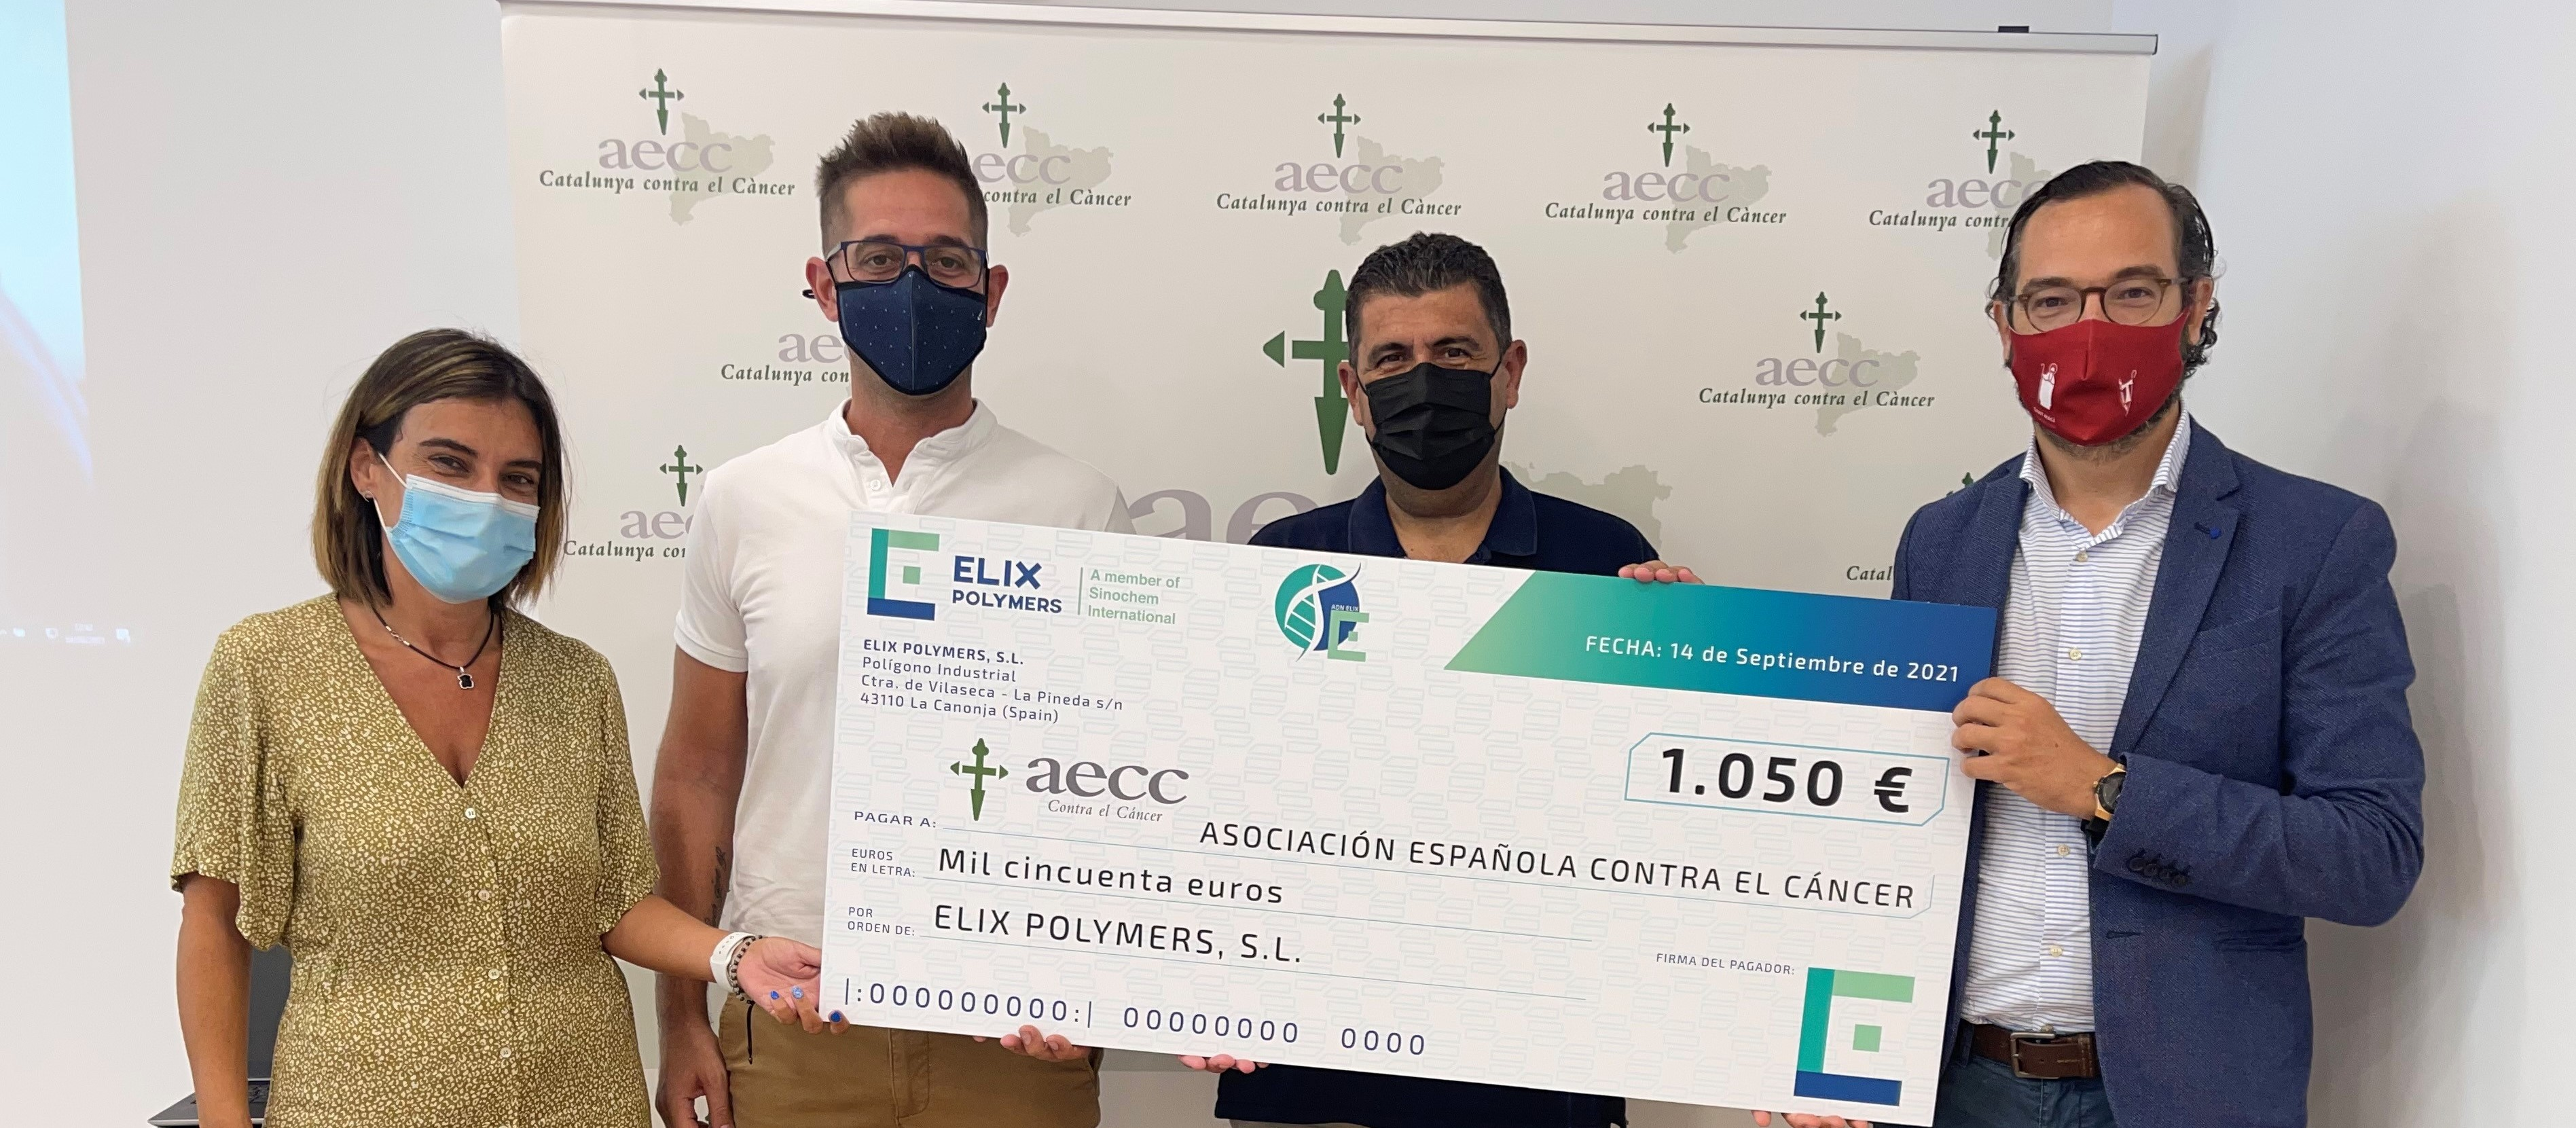 ELIX Polymers gives AECC a check for 1,050 euro